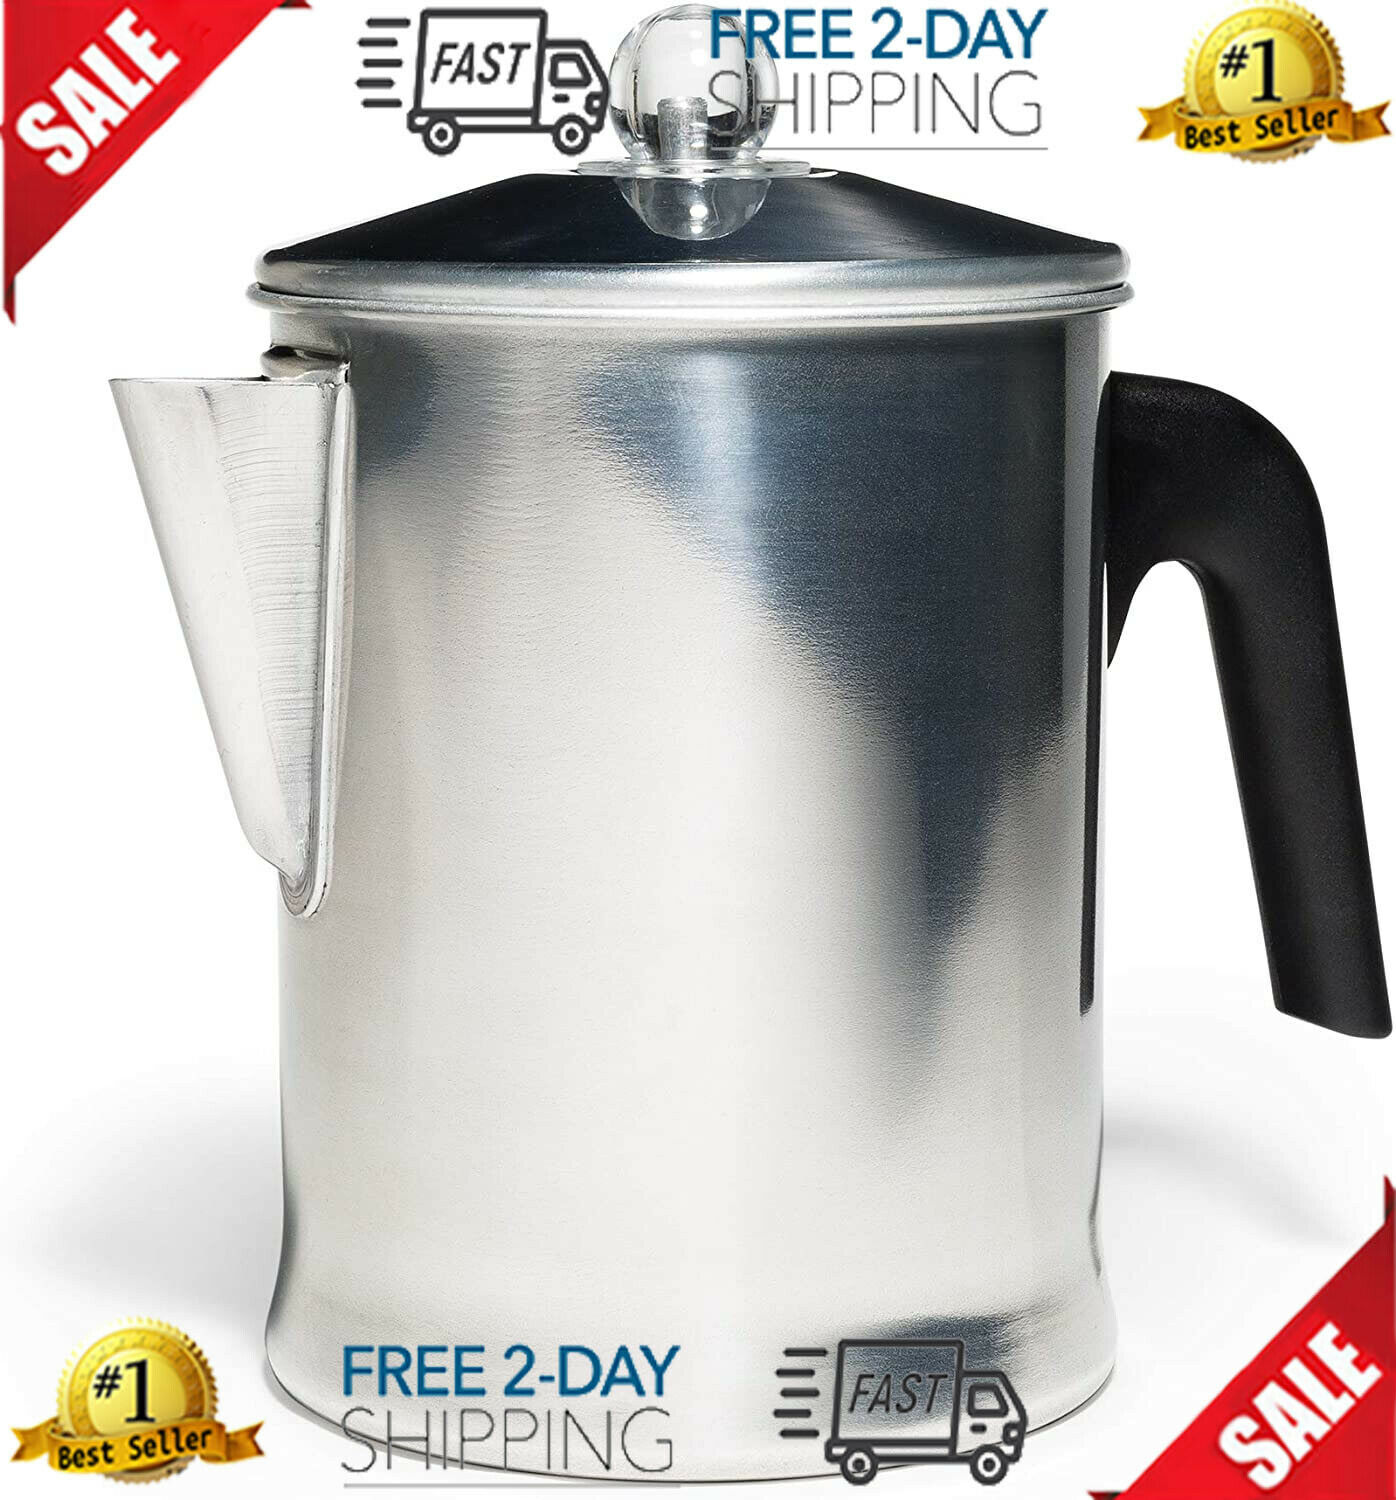 Stovetop Percolator Heavy Duty Today Aluminum Pot Brew Coffe